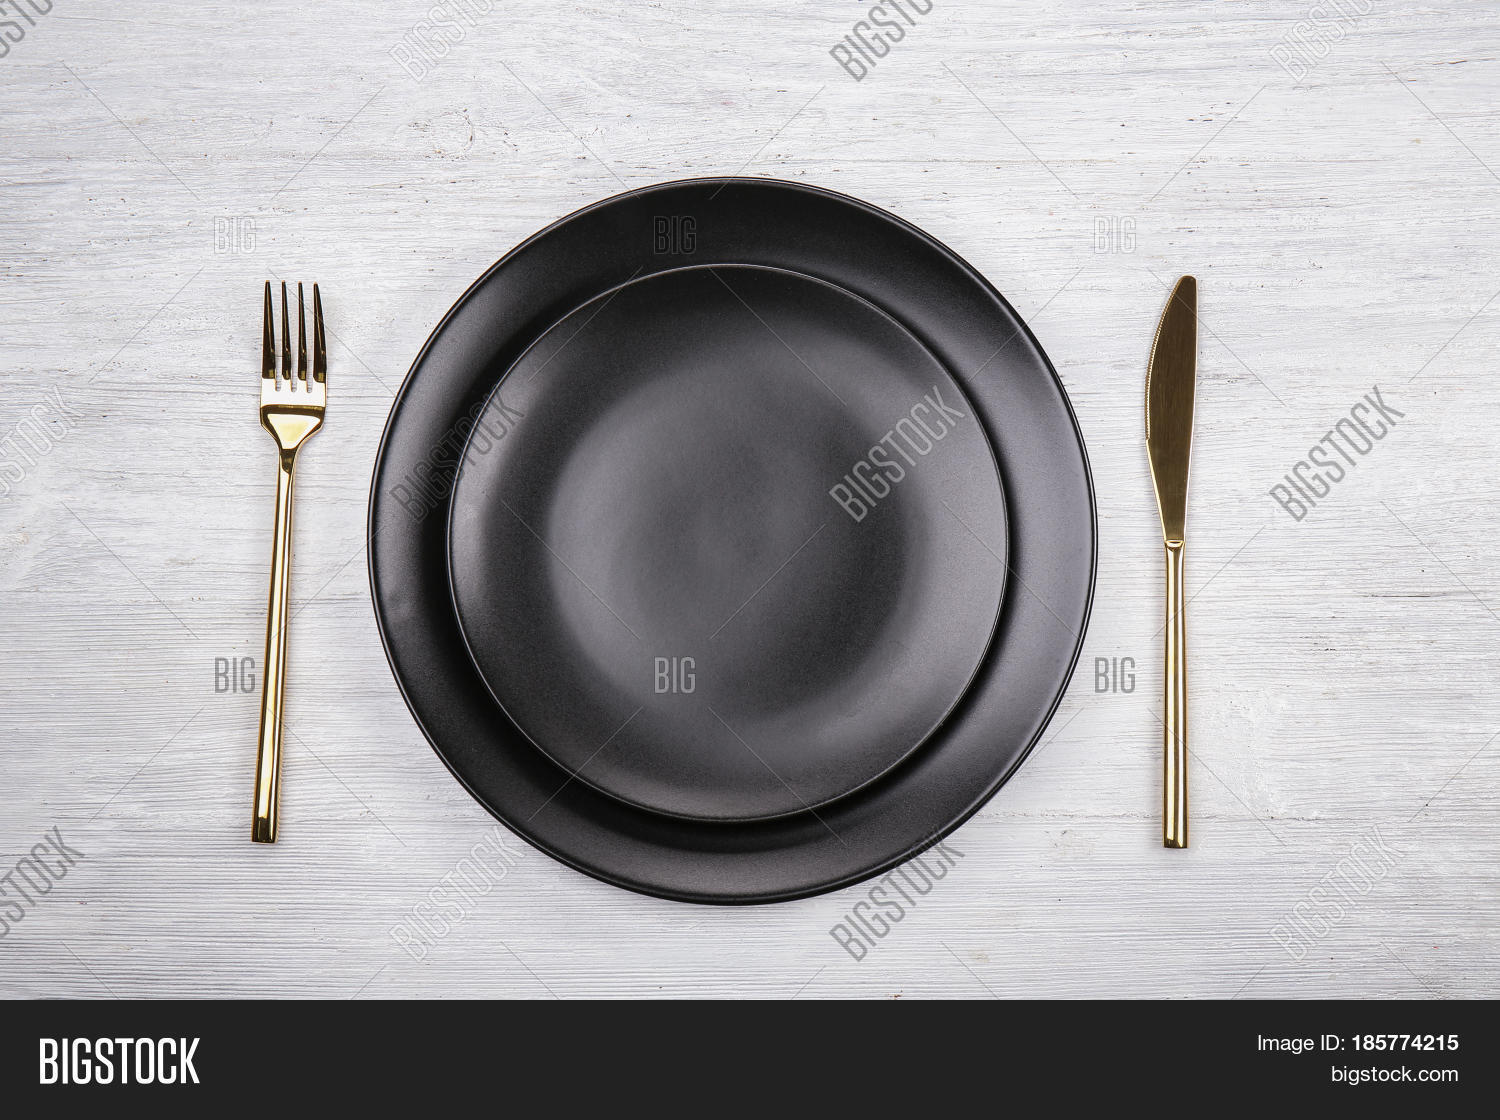 Table Setting One Person On Wooden Image Photo Bigstock